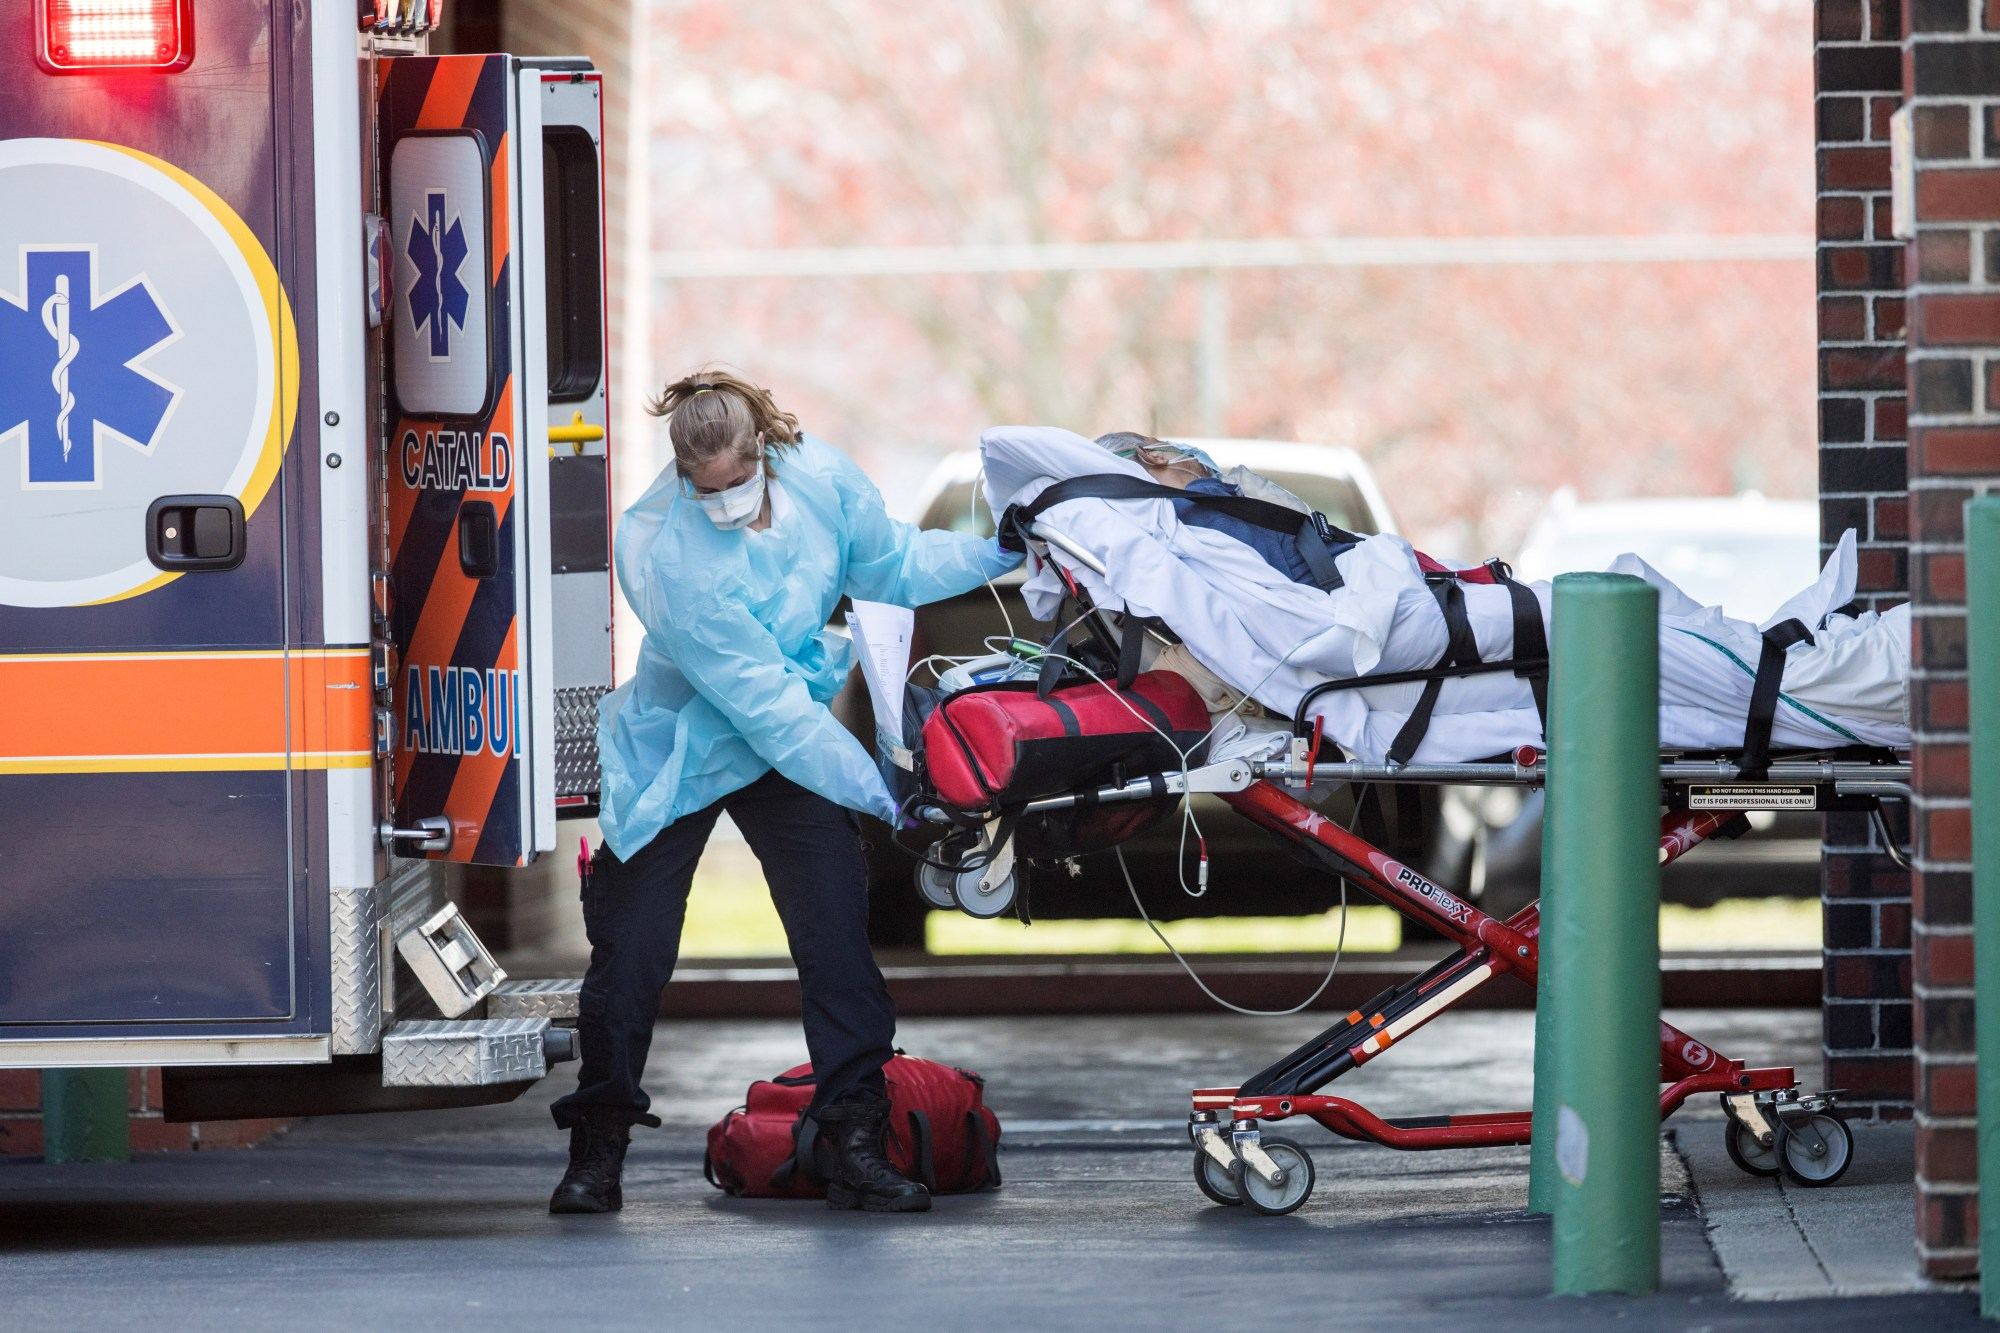 First responders load a patient into an ambulance from a nursing home where multiple people have contracted COVID-19 on April 17, 2020 in Chelsea, Massachusetts. (Scott Eisen/Getty Images)